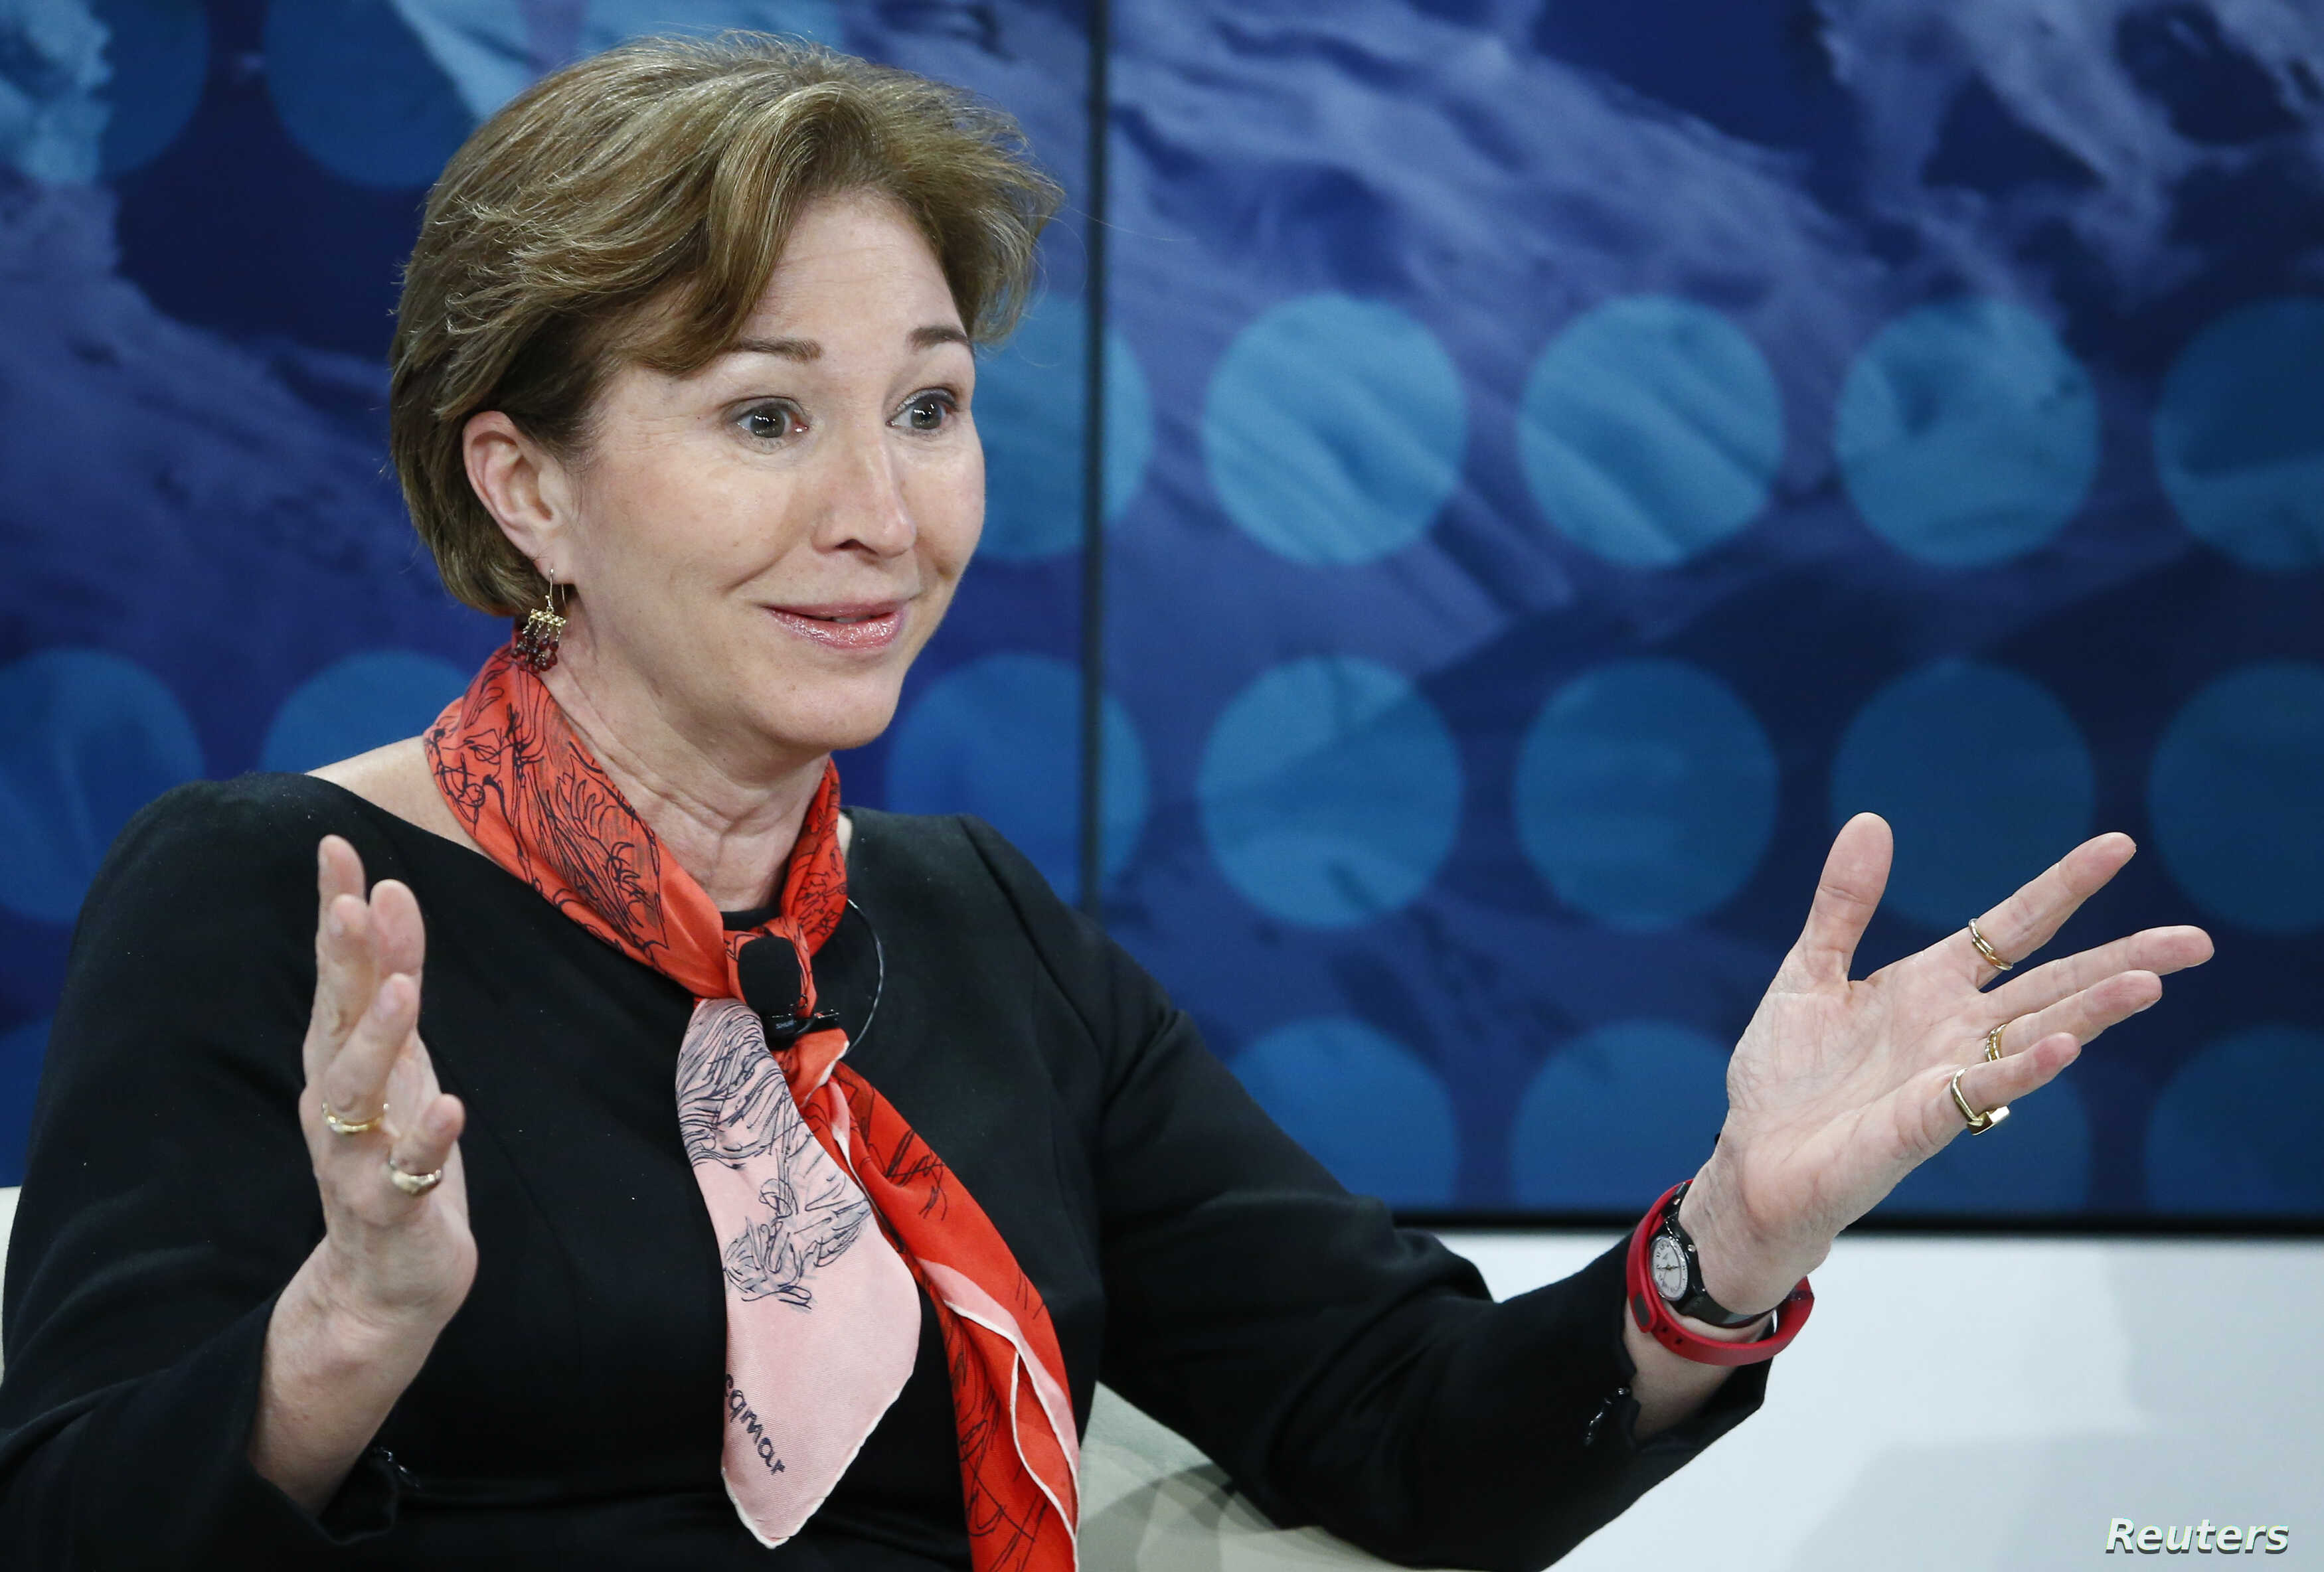 """Anne-Marie Slaughter, President and CEO of New America, attends the session """"The Diversity Dividend""""  in the Swiss mountain resort of Davos, Jan. 24, 2015."""